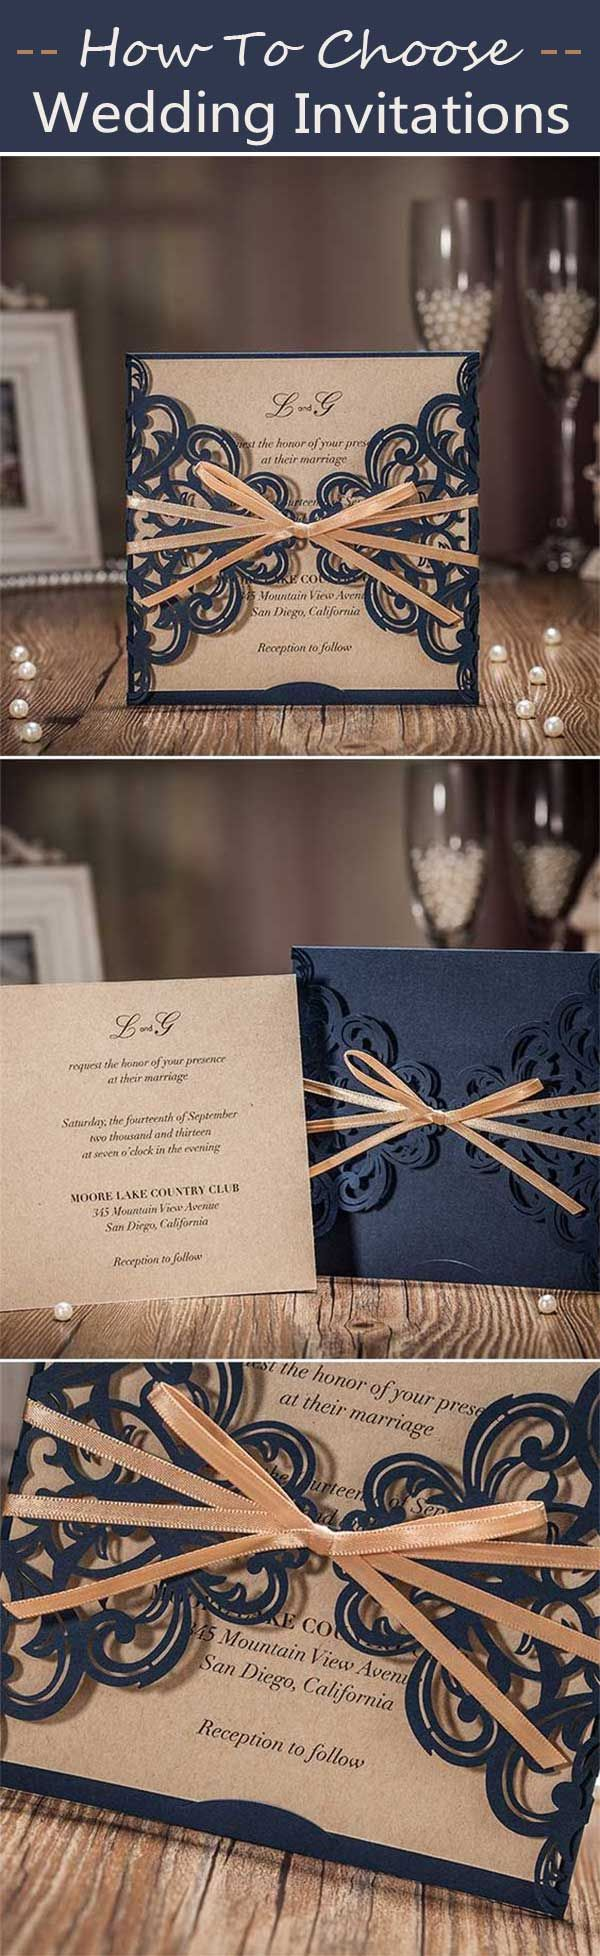 free wedding invitation templates country theme%0A REAL WEDDING ACCESSORIES  HOW TO CHOOSE YOUR PERFECT WEDDING INVITATIONS   Wedding  Invites Paper